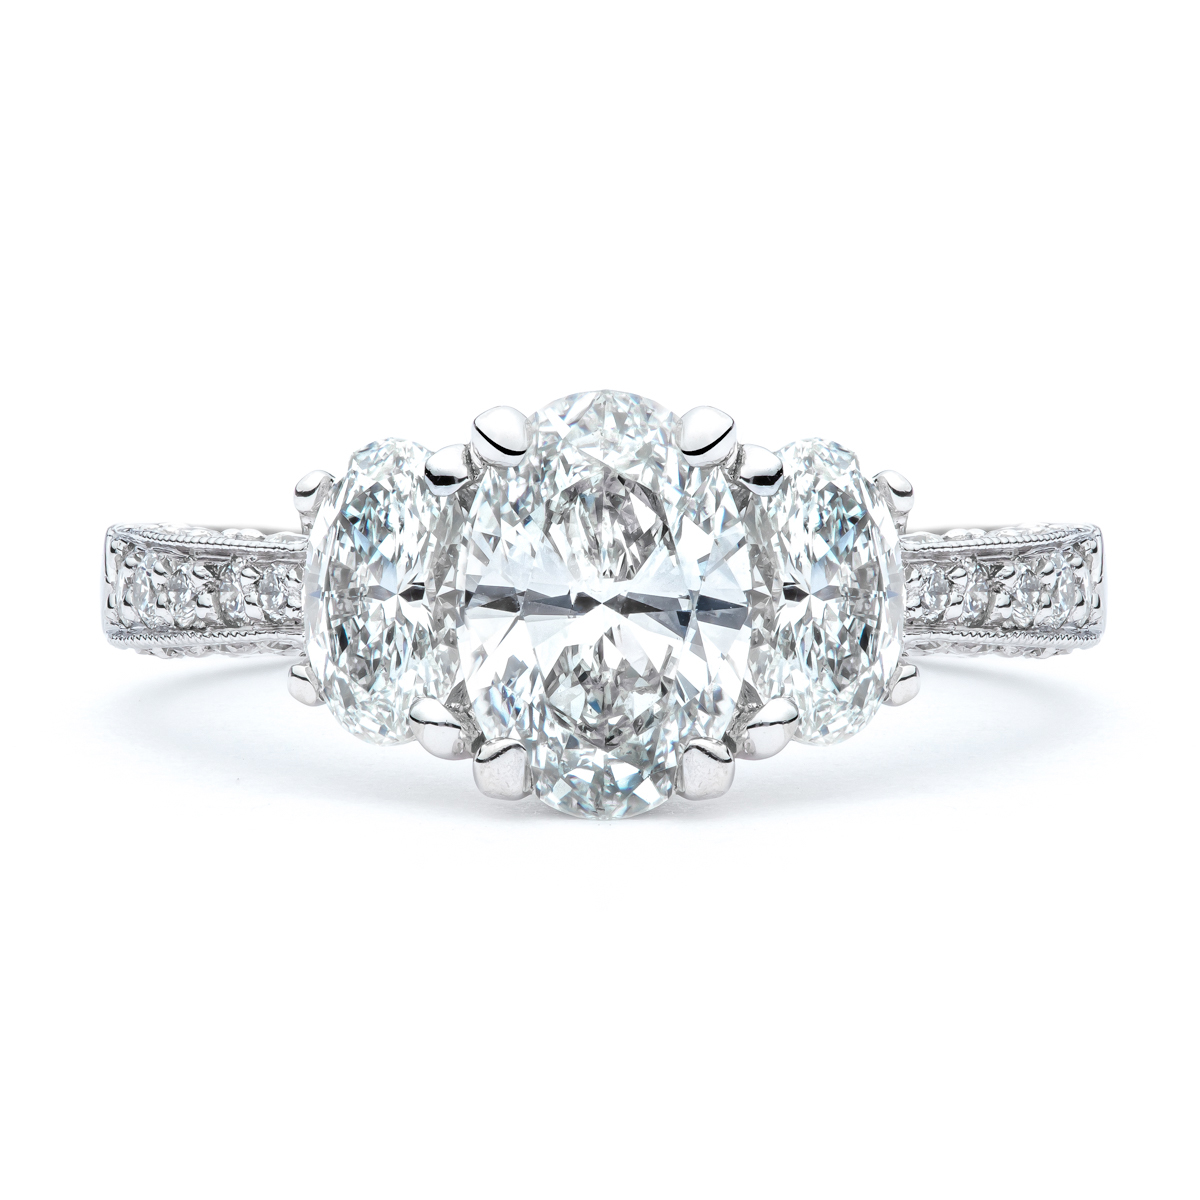 The Caroline Oval Three Diamond Engagement Ring